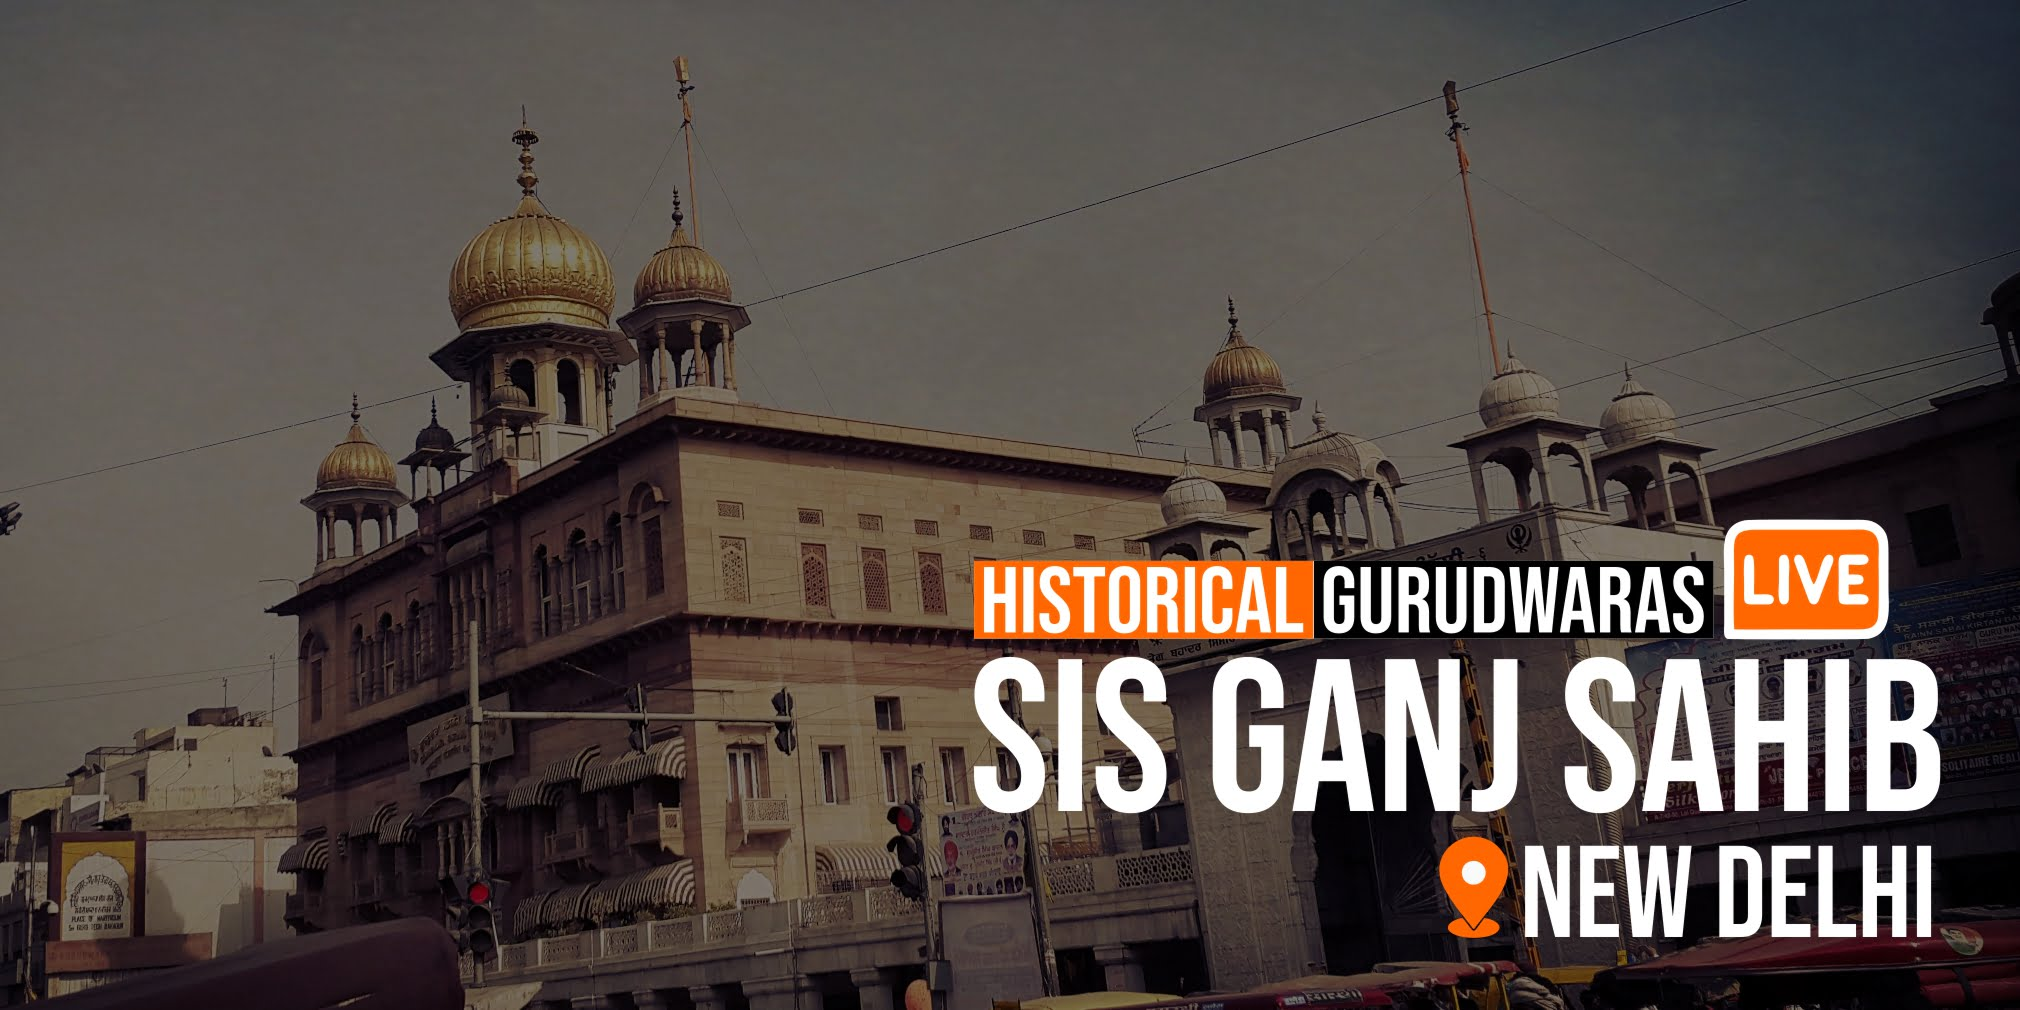 Live Audio From Sri Sis Ganj Sahib